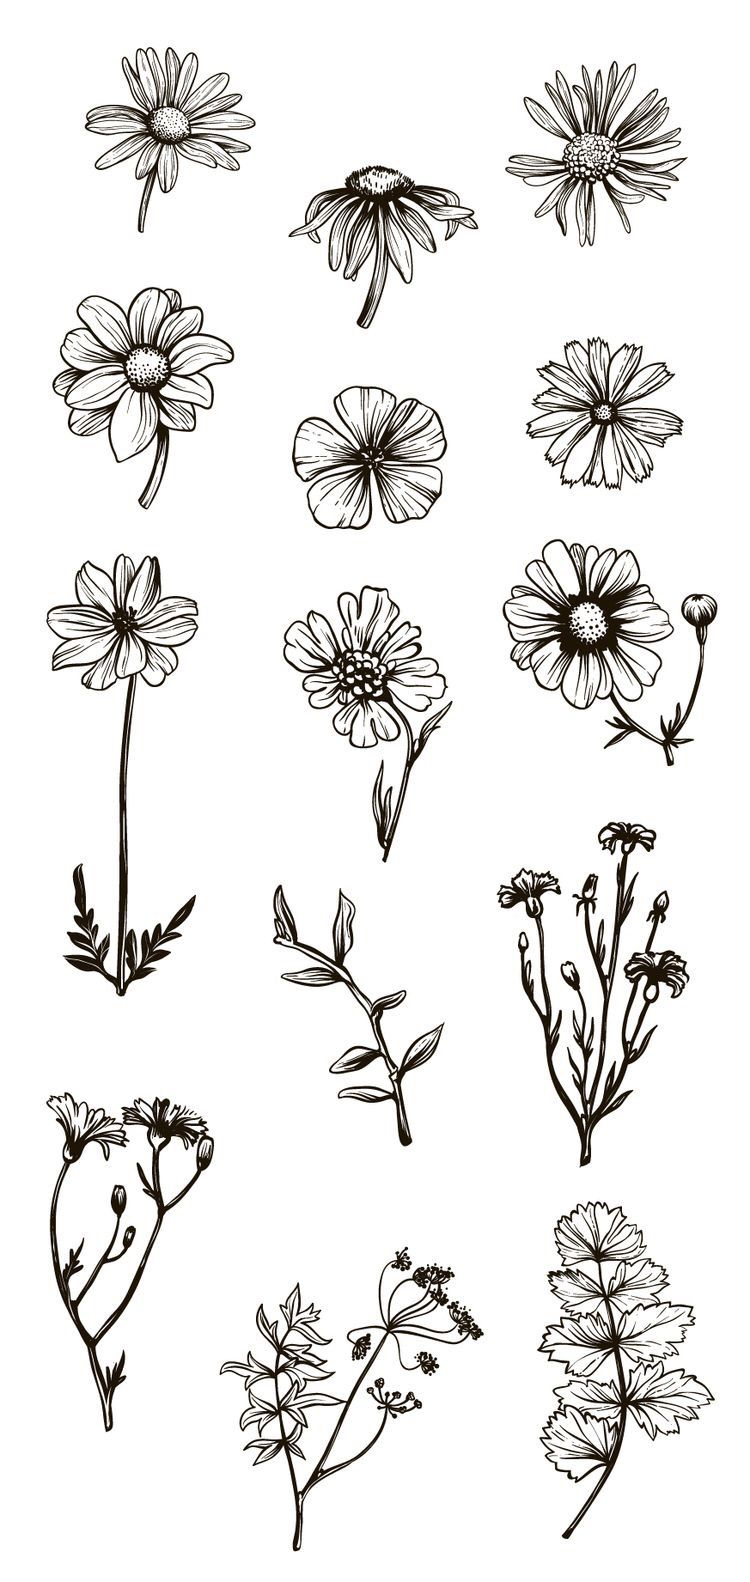 Small Drawings: 25 Beautiful Flower Drawing Ideas & Inspiration